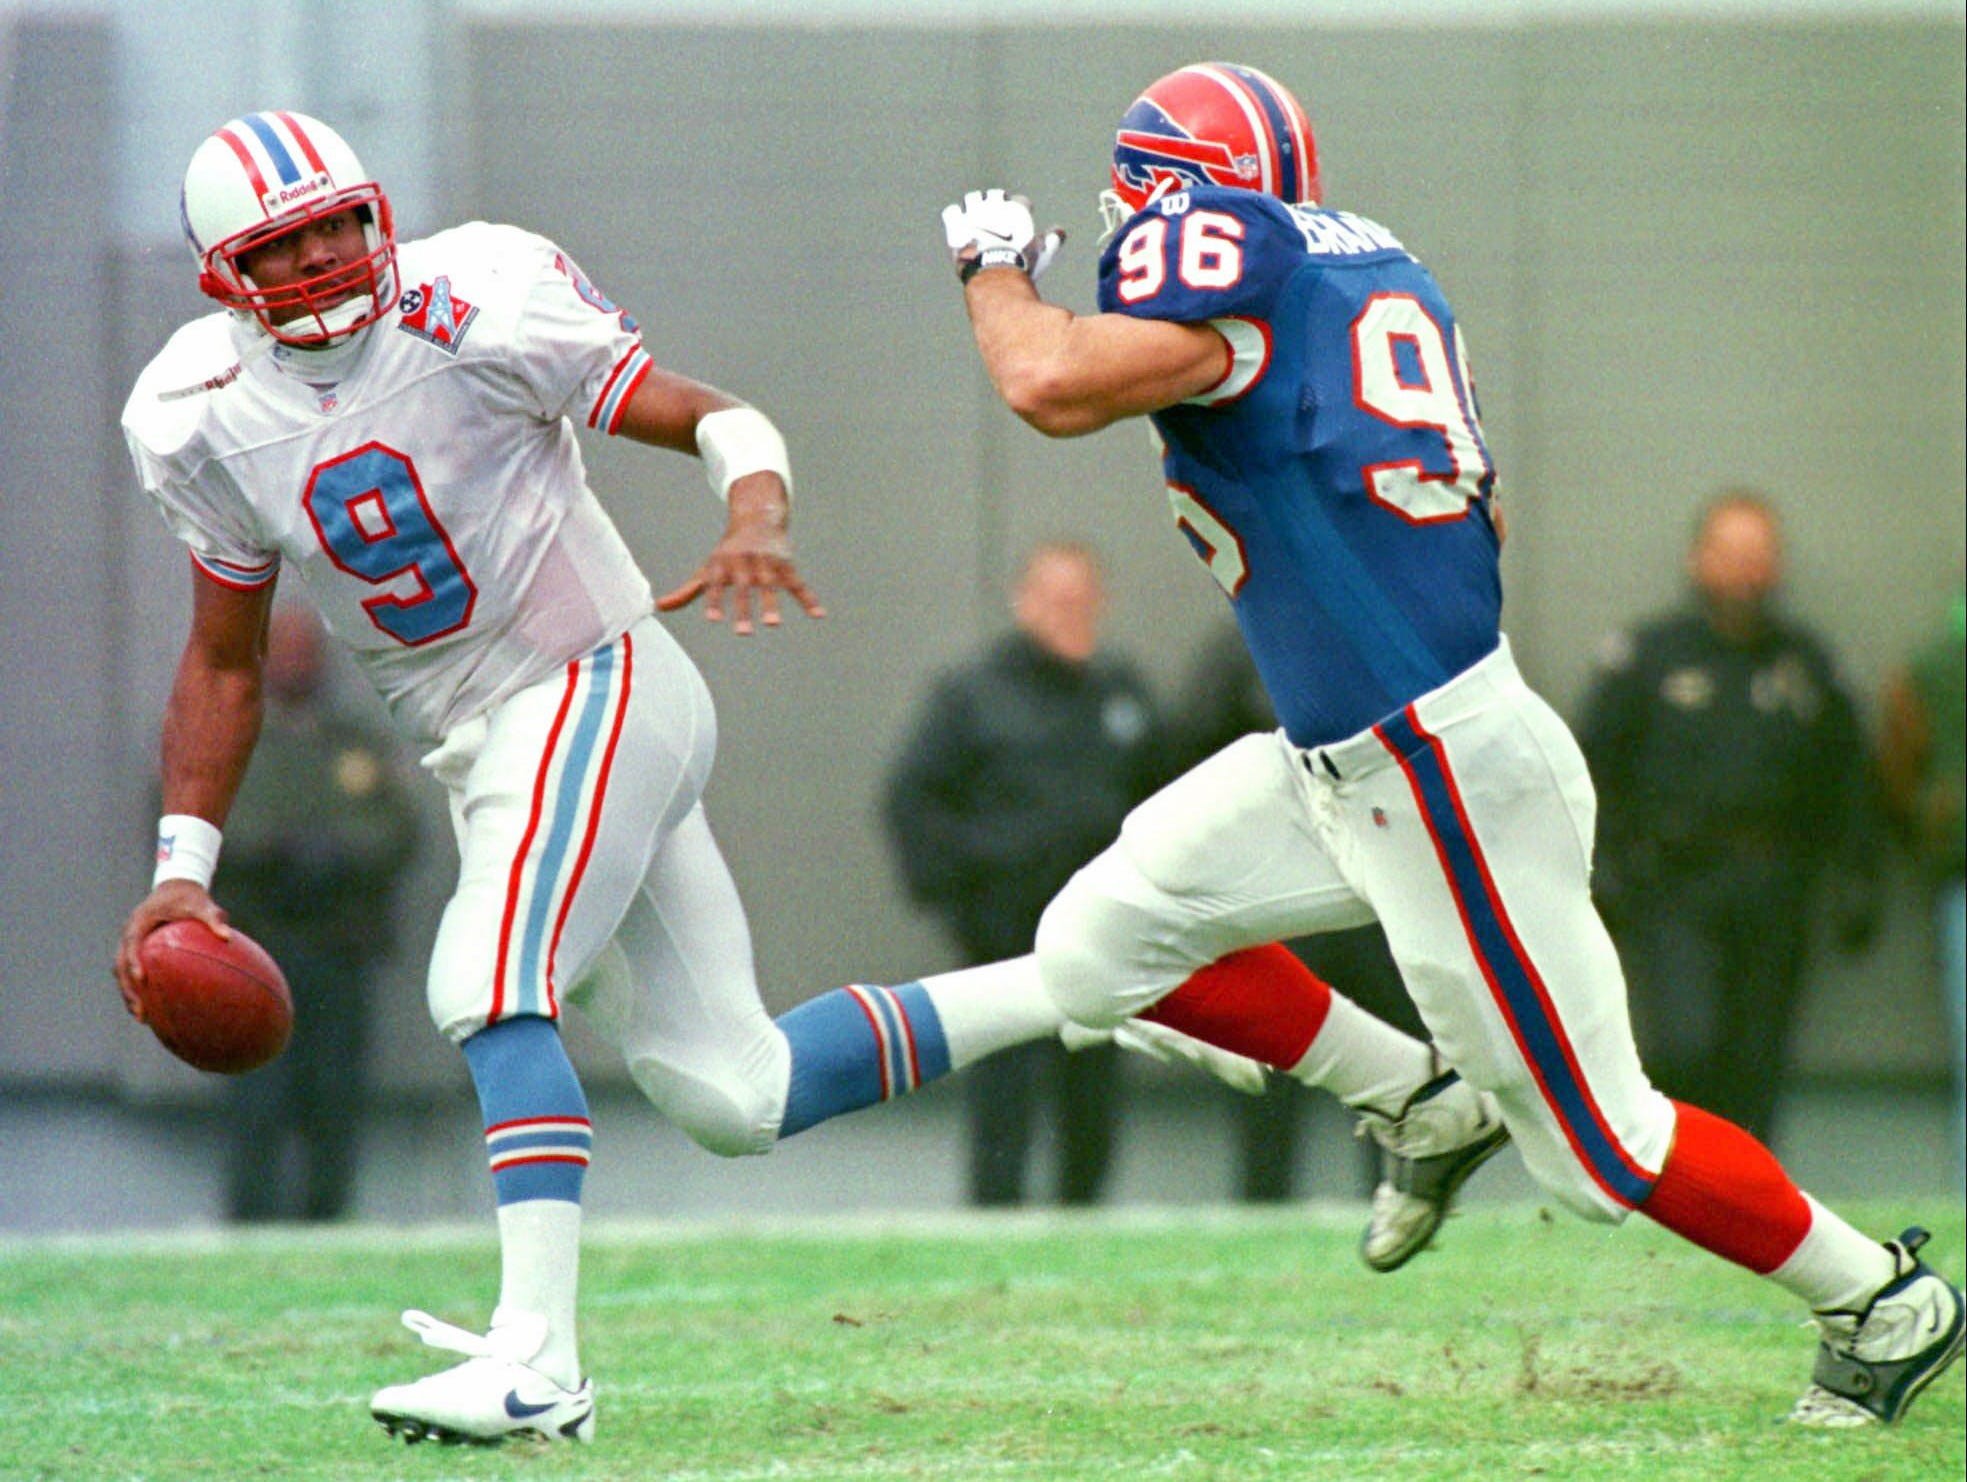 Tennessee Oilers quarterback Steve McNair (9) scrambles from Buffalo Bills linebacker Dan Brandenburg (96) in the first quarter of the Oilers' 31-14 win Nov. 23, 1997 in Memphis. McNair threw for 167 yards and one touchdown and also ran for two touchdowns.